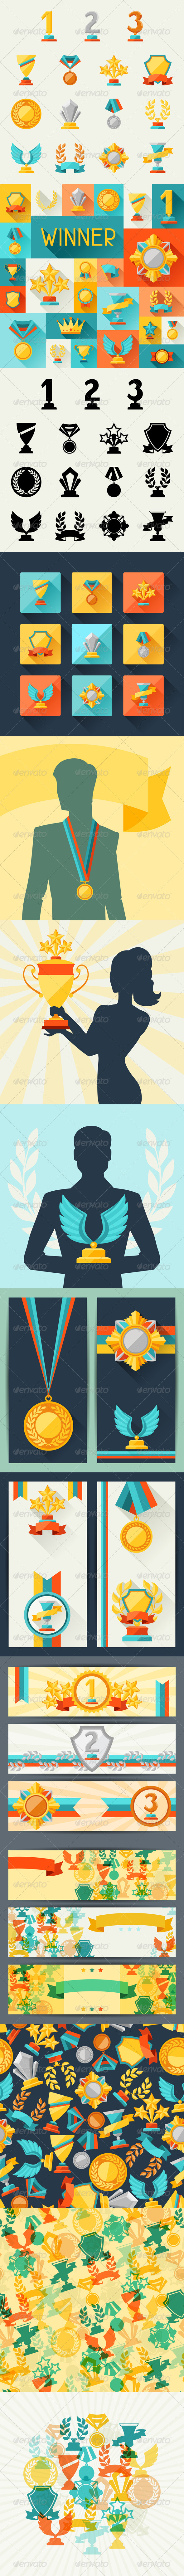 GraphicRiver Trophy and Awards in Flat Design Style 6665226